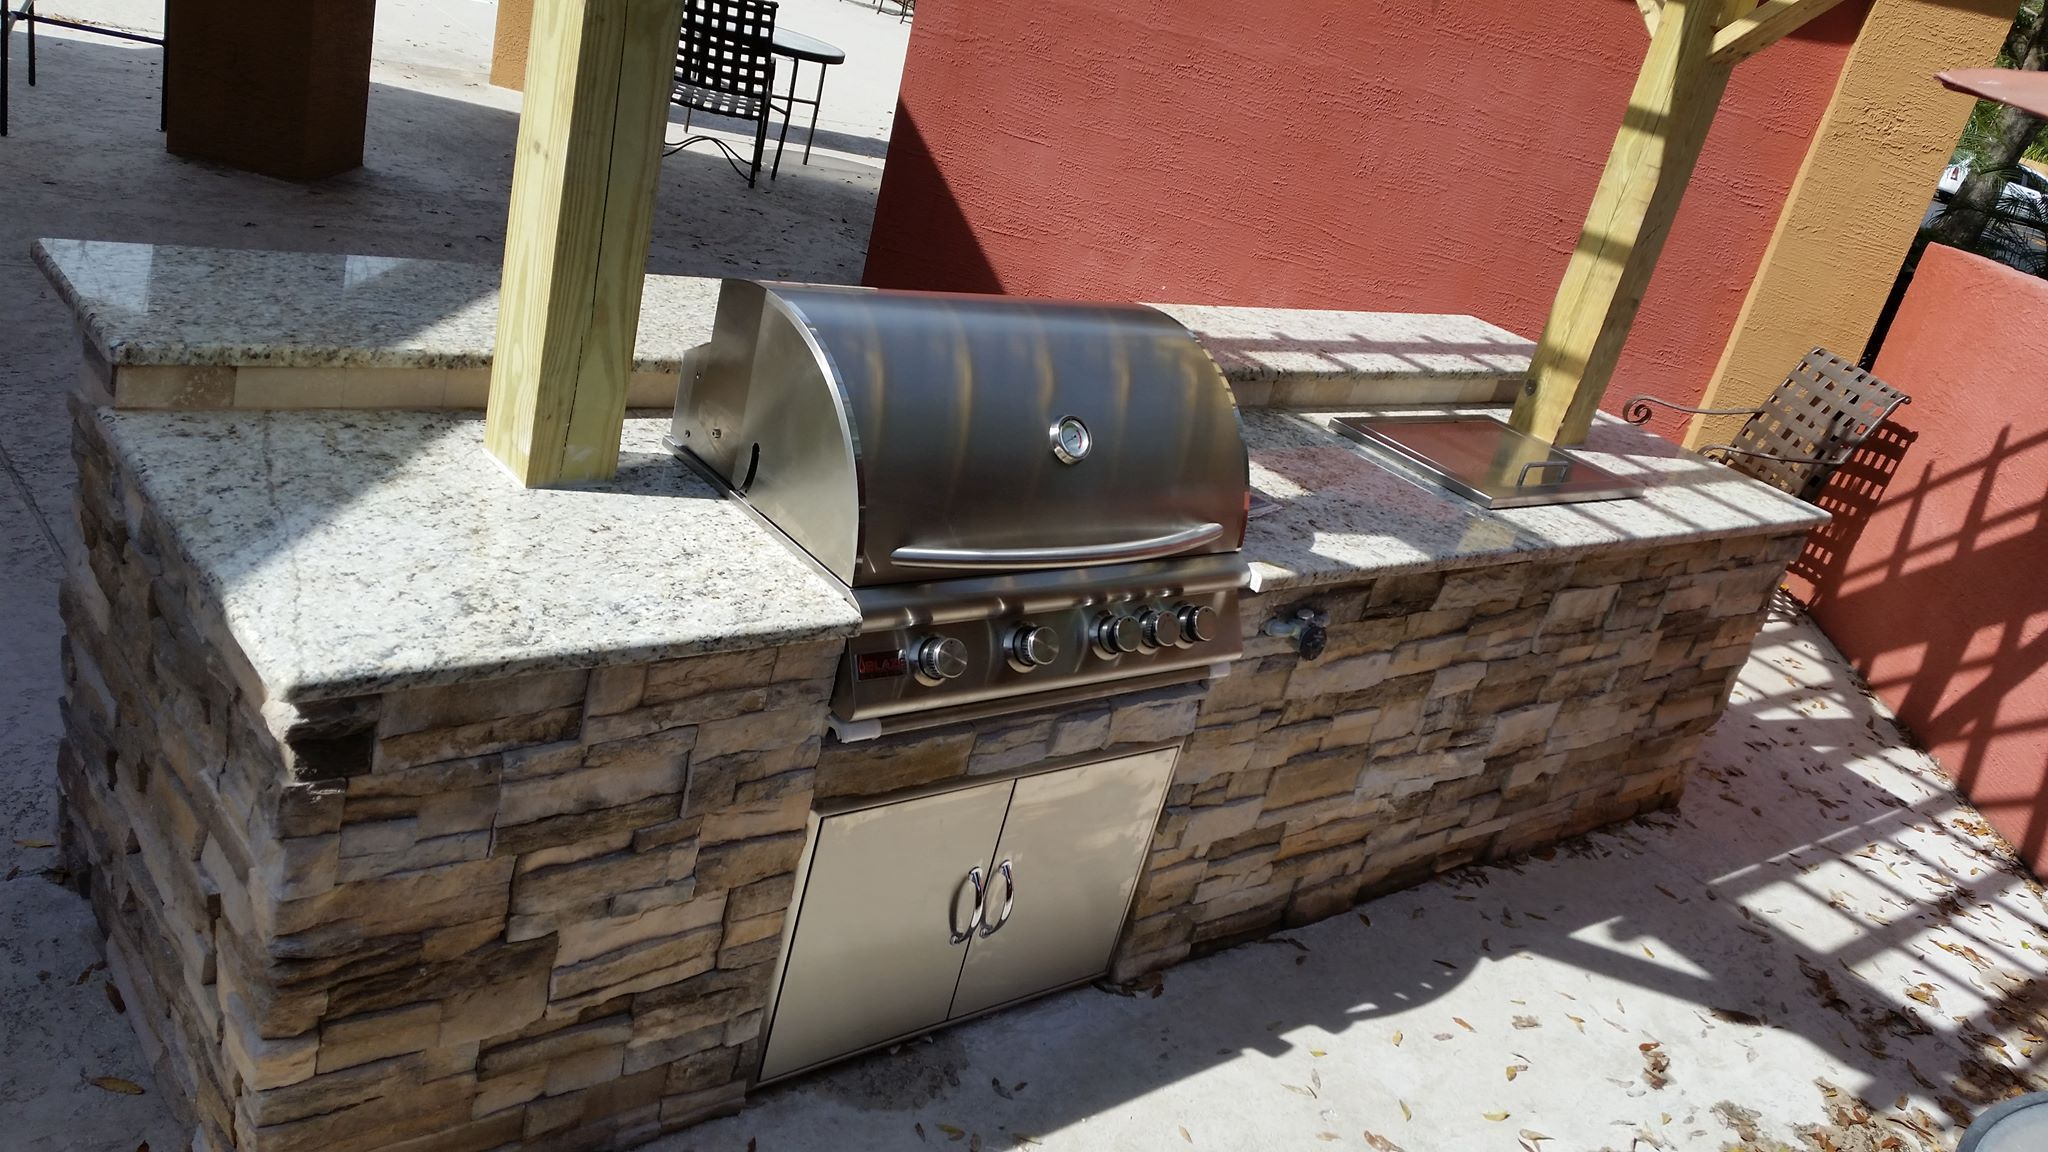 Combining premium features with affordability, Blaze grills